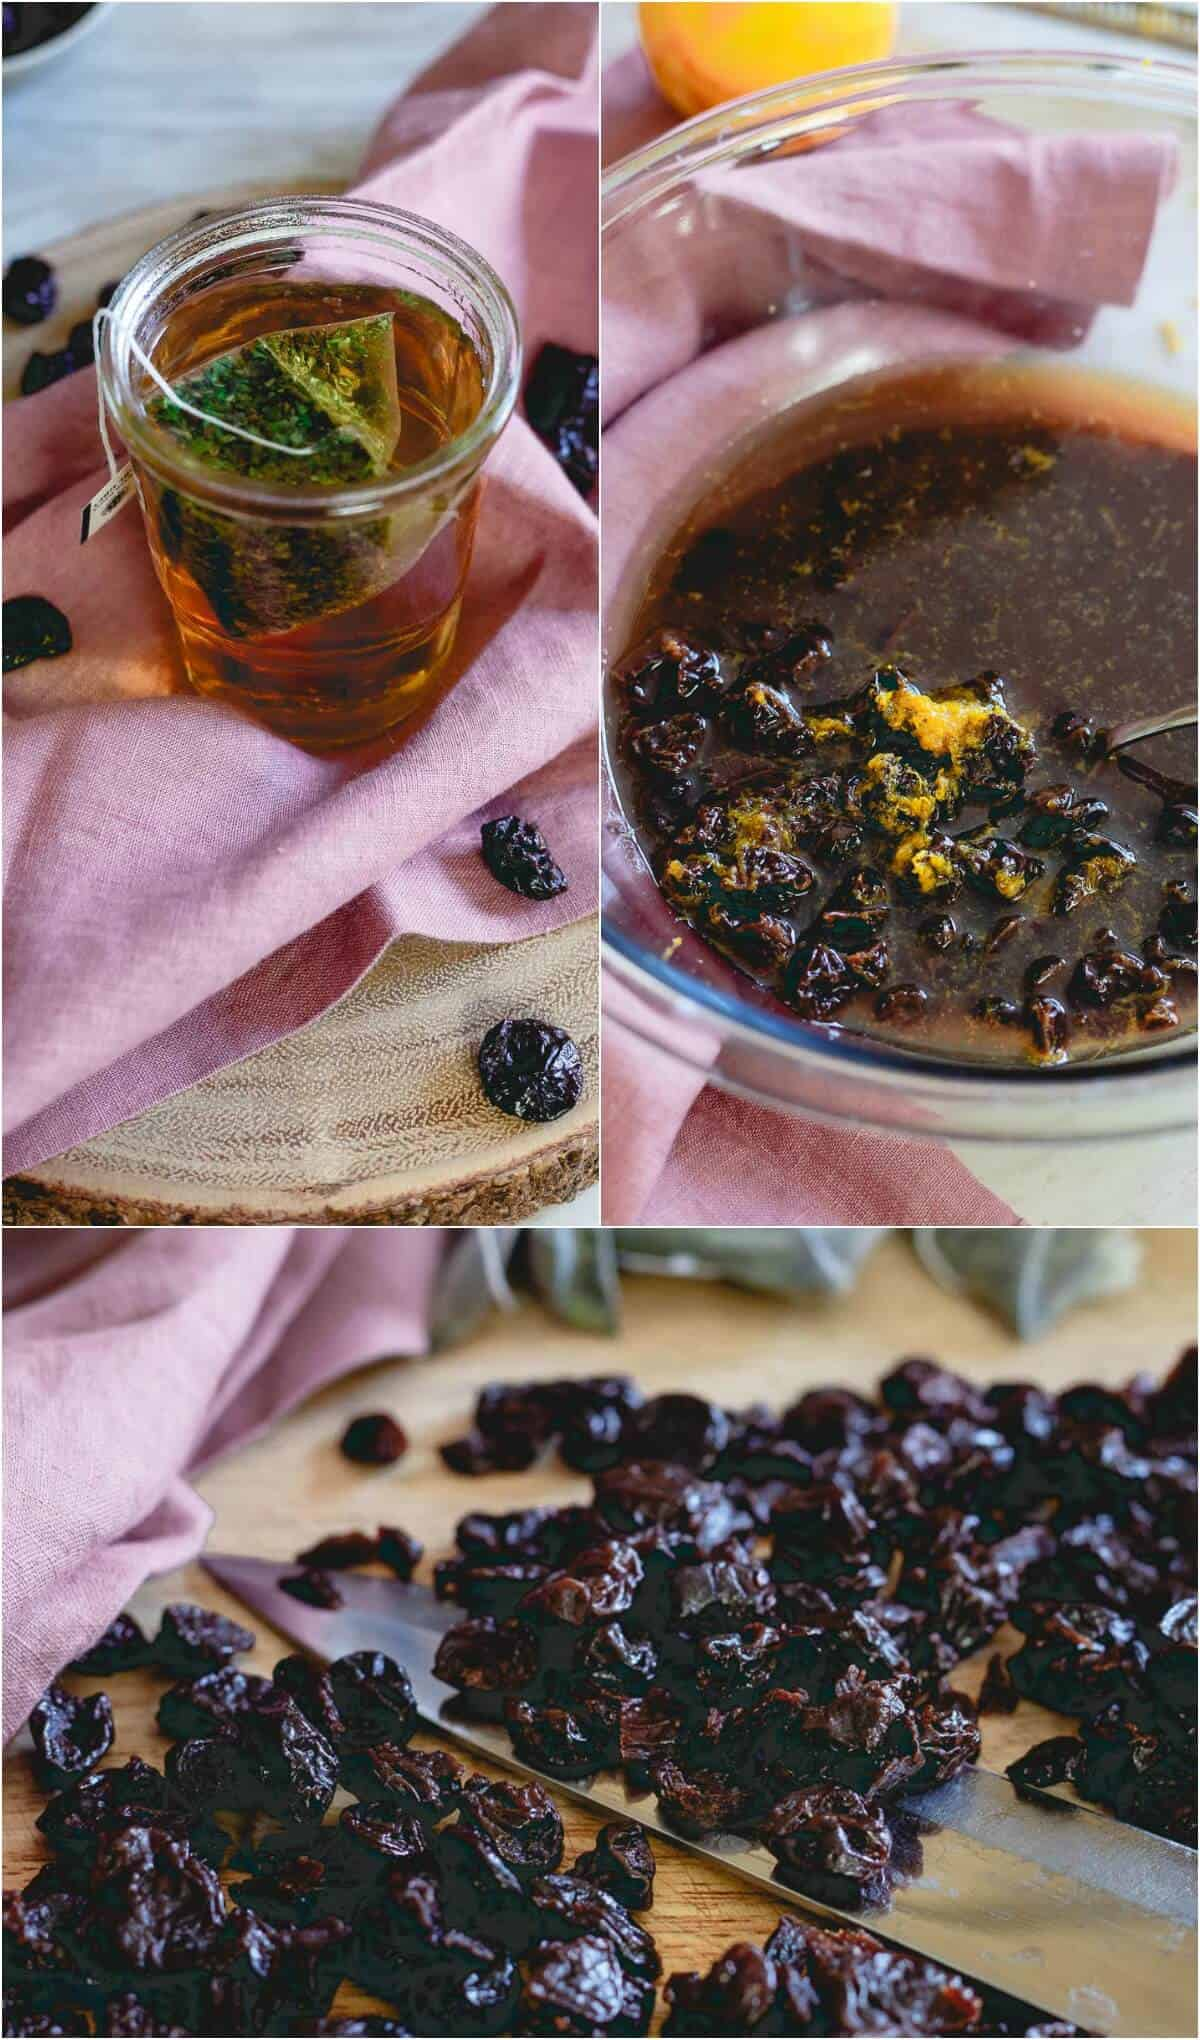 Dried tart cherries are soaked in earl grey tea and make a delicious and nutritious addition to this simple tea bread.